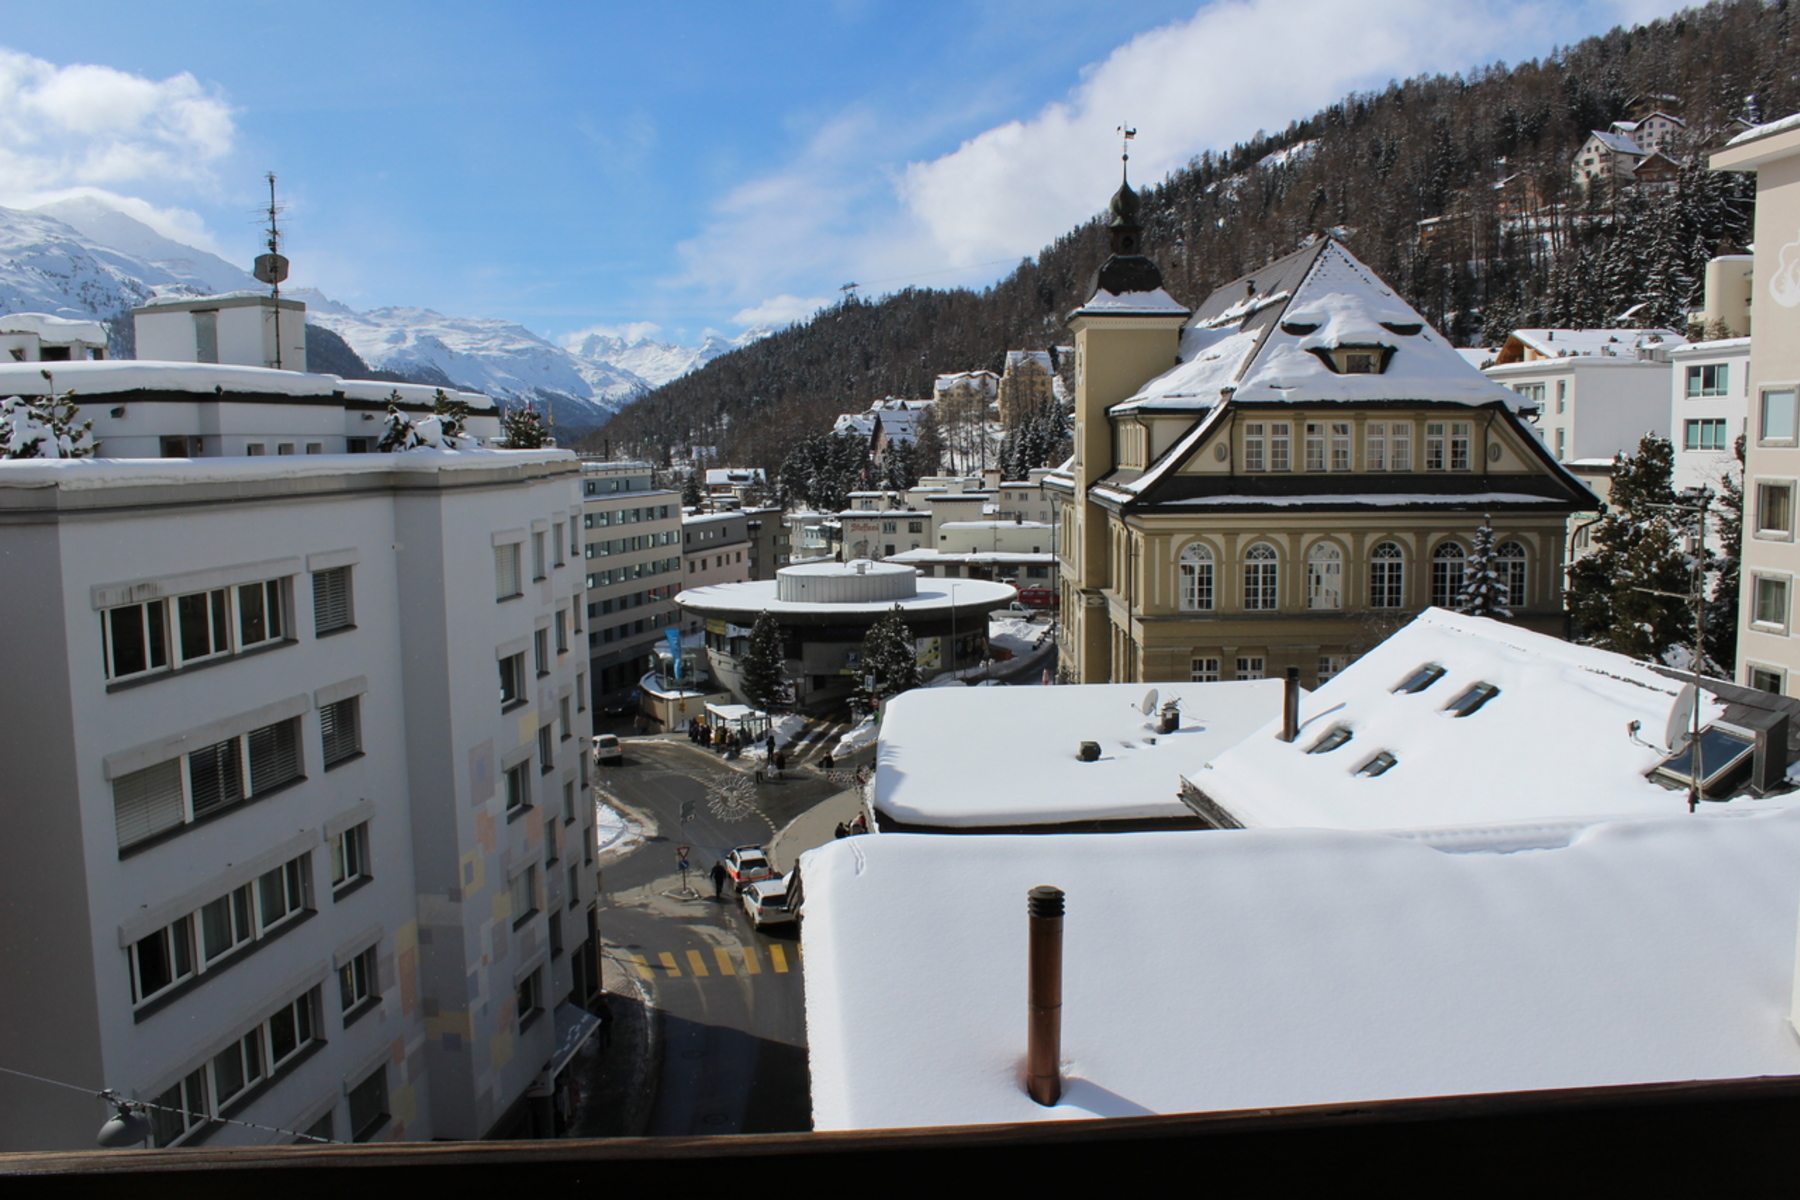 Apartamento para Venda às Exclusive 4.5 room attic apartment in the center St. Moritz St. Moritz, Grisons, 7500 Suíça